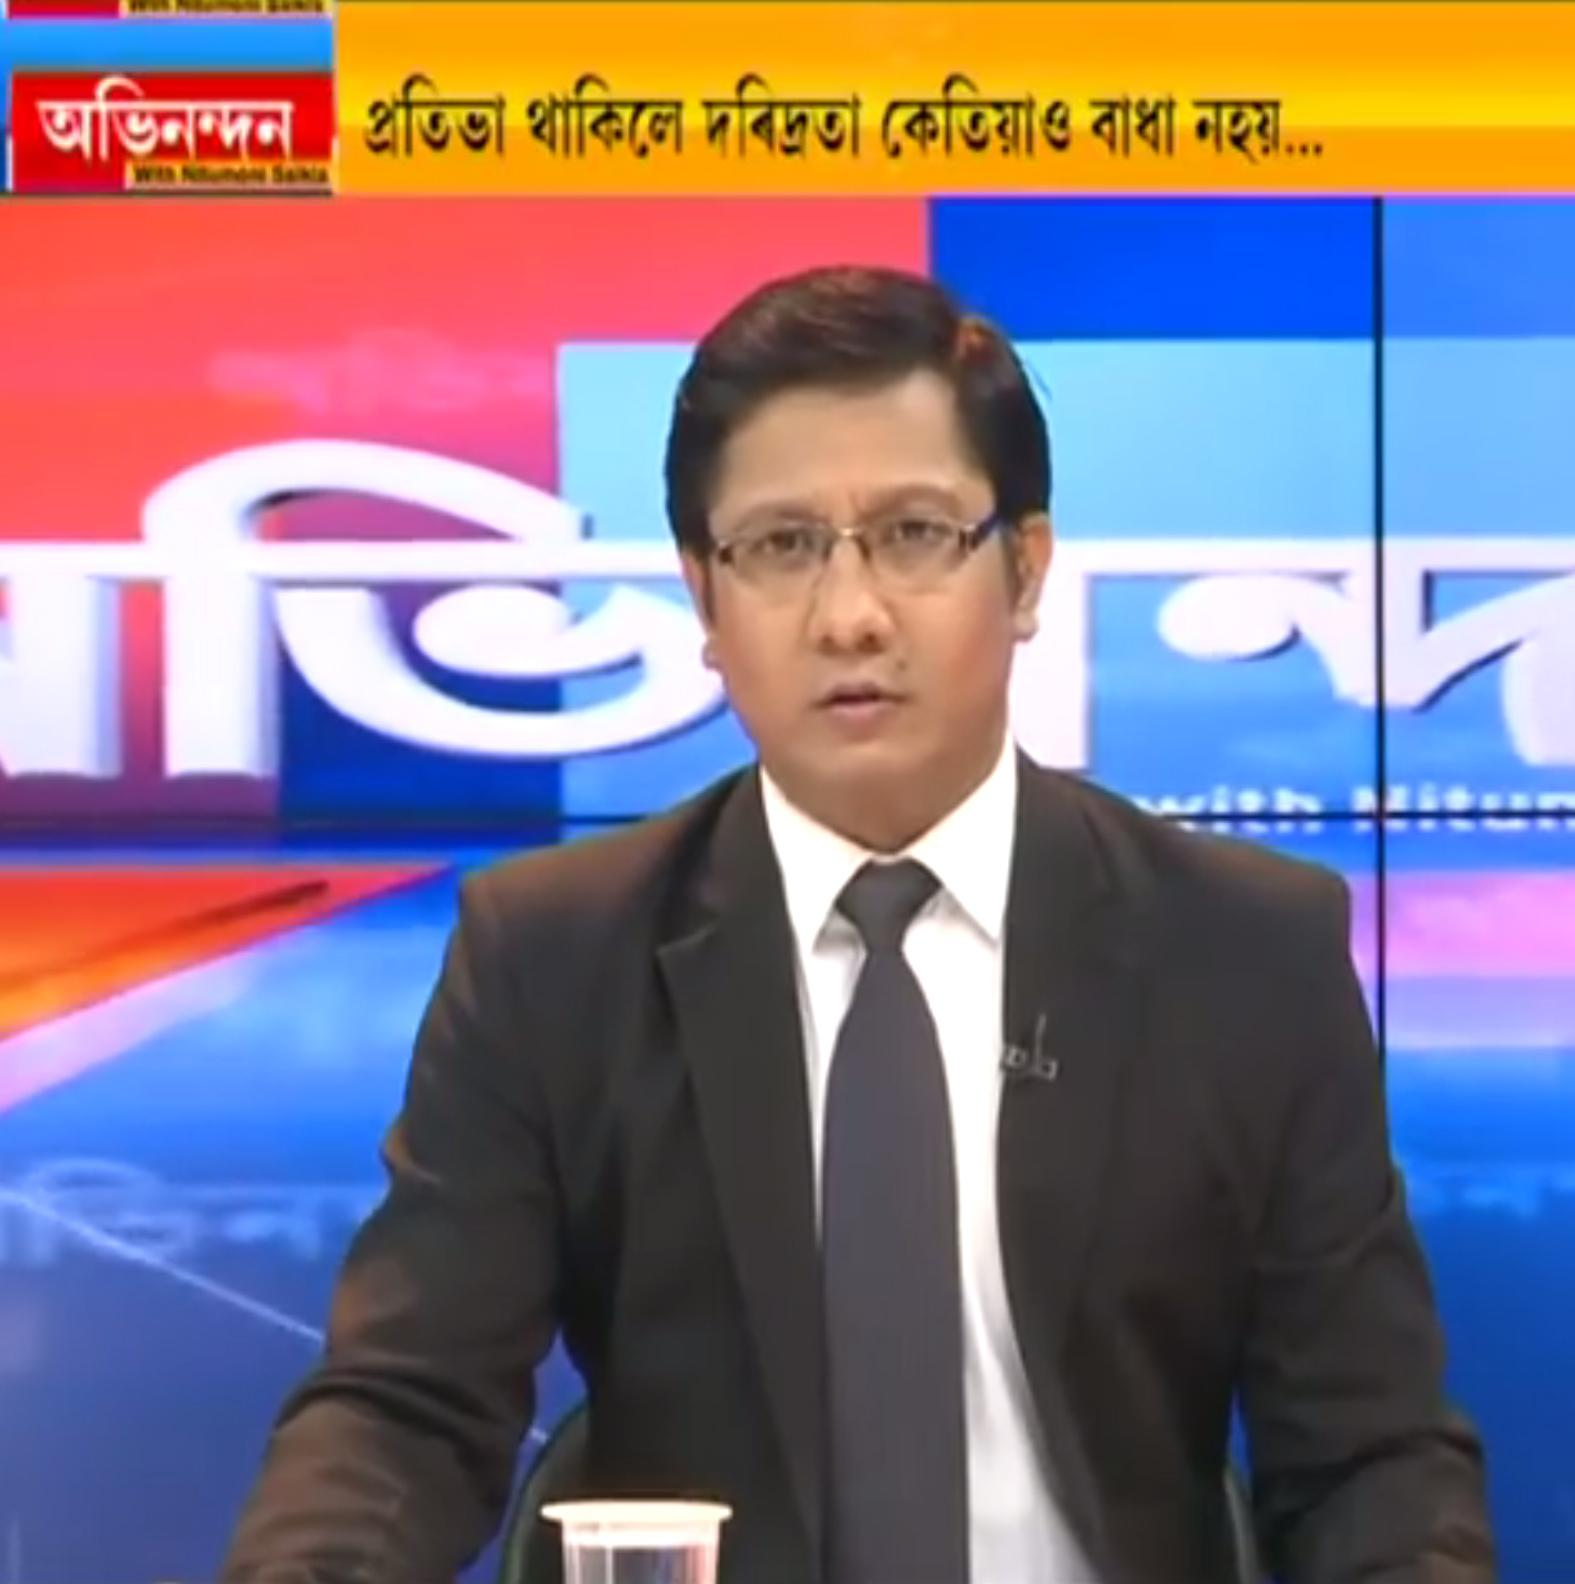 http://www.indiantelevision.com/sites/default/files/styles/smartcrop_800x800/public/images/tv-images/2016/11/08/pratidintime800x800_0.jpg?itok=WIyZZo-N